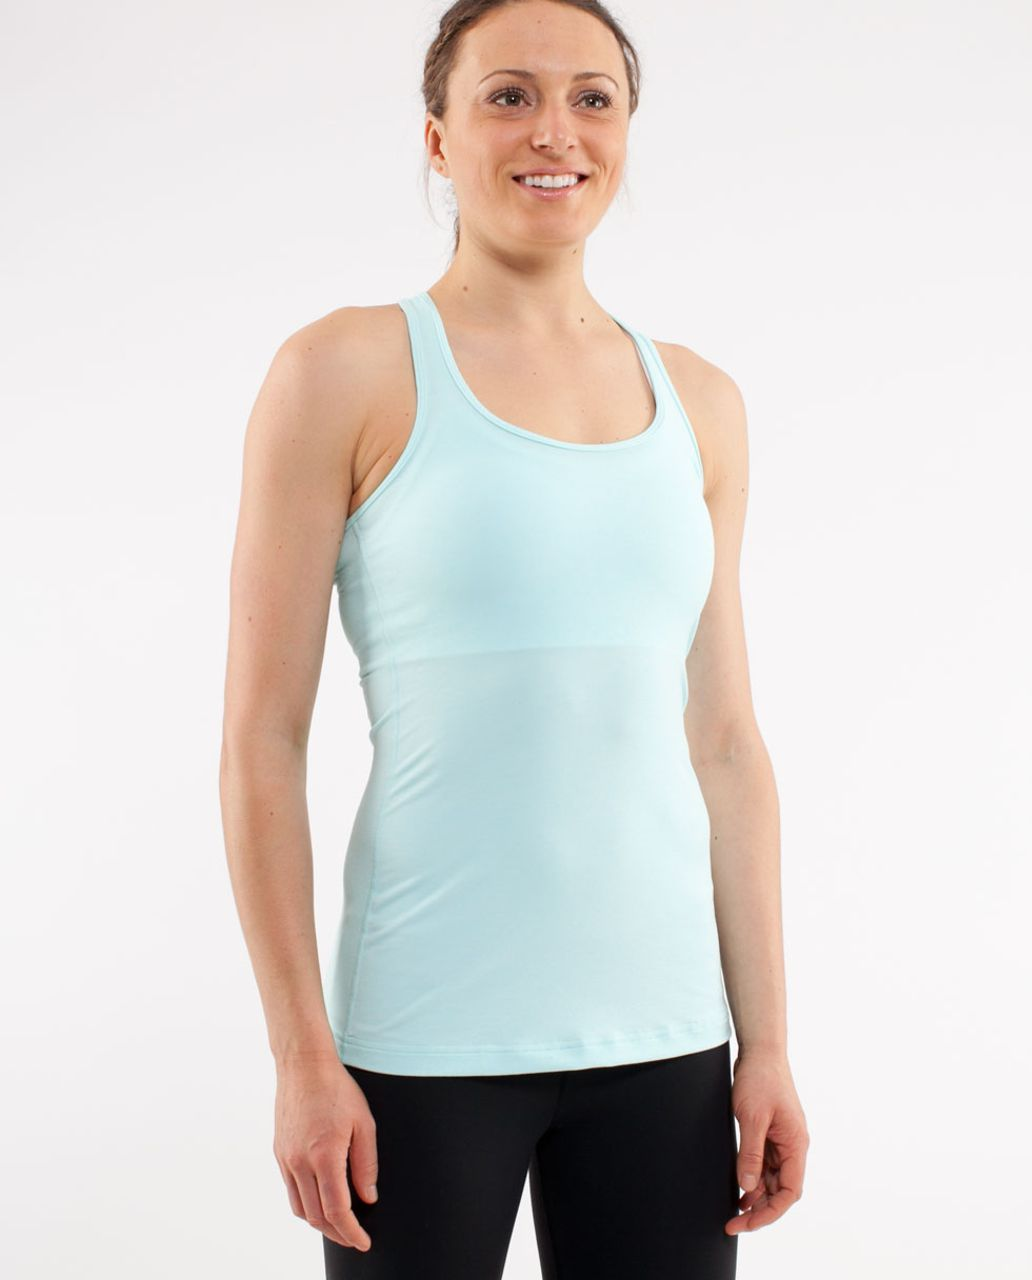 Lululemon Cool Racerback - Heathered Aquamarine